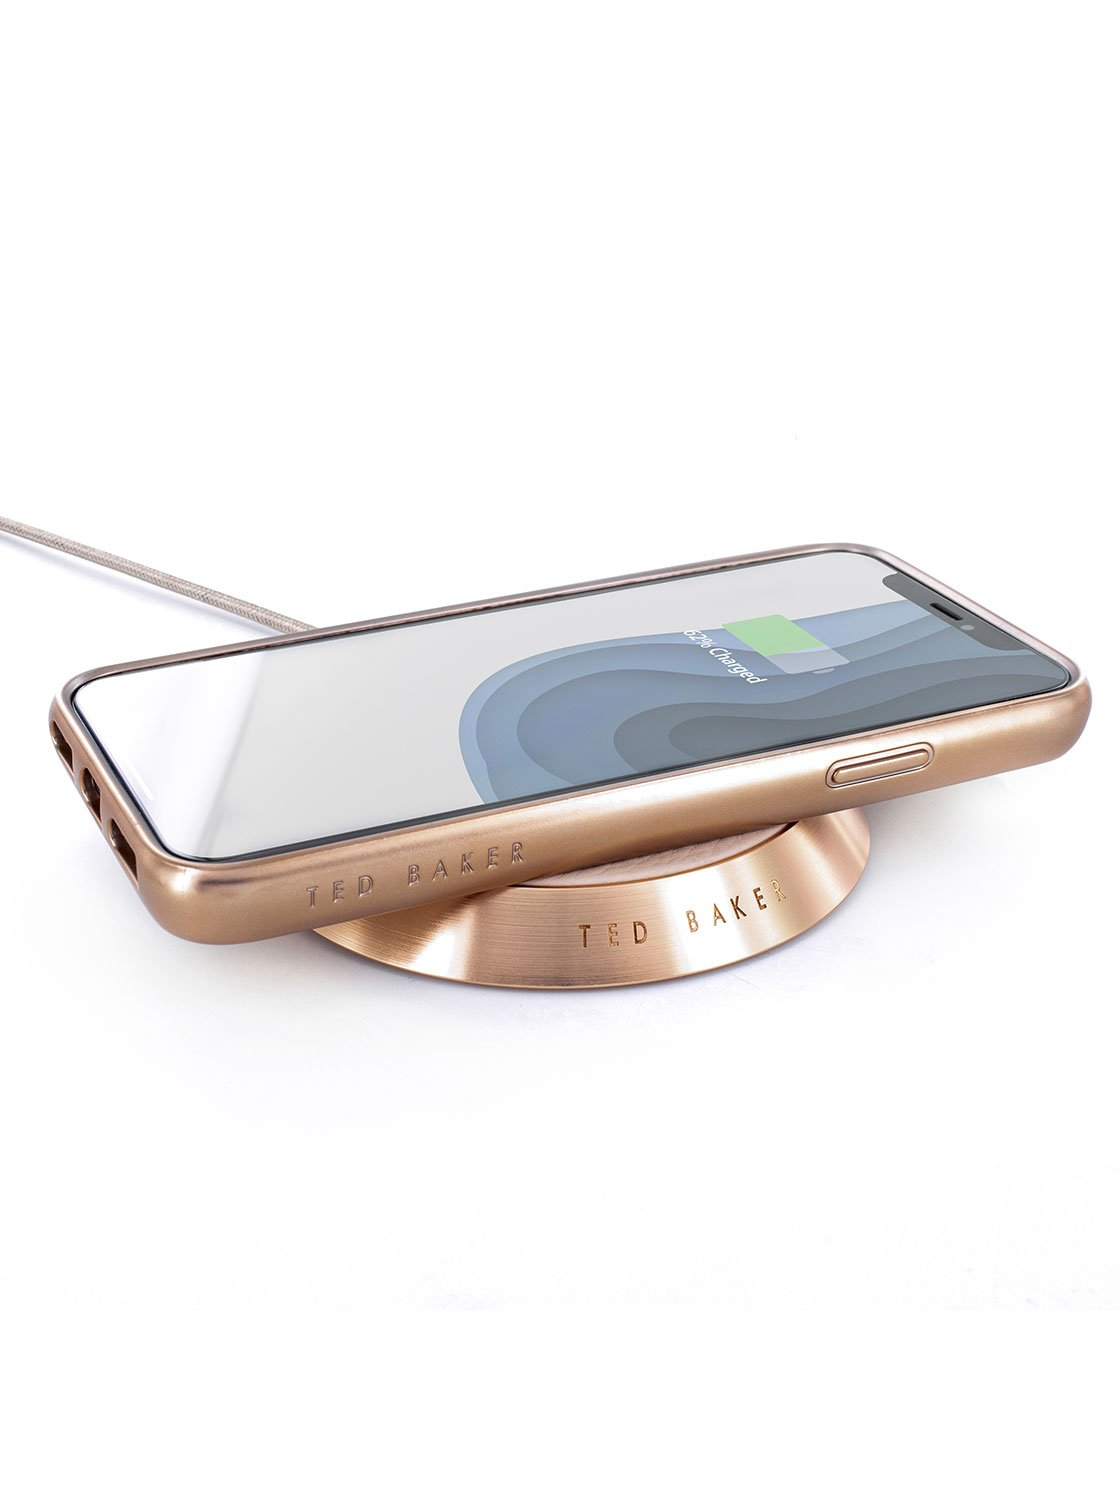 With compatible device image of the Ted Baker Universal power bank in Taupe